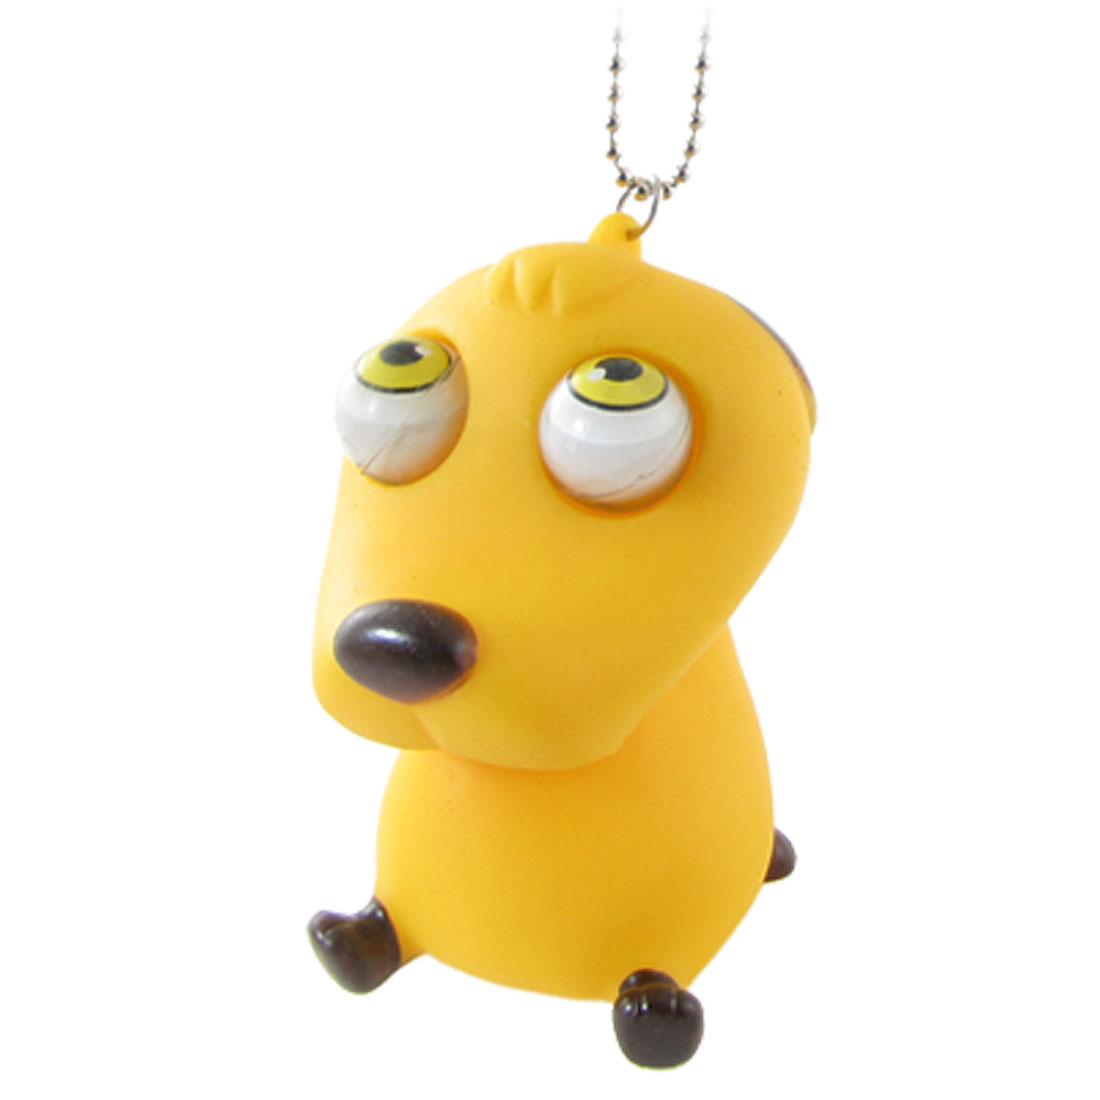 Beaded Chain Yellow Small Dog Shaped Pop Eyes Decompression Vent Squeeze Toy